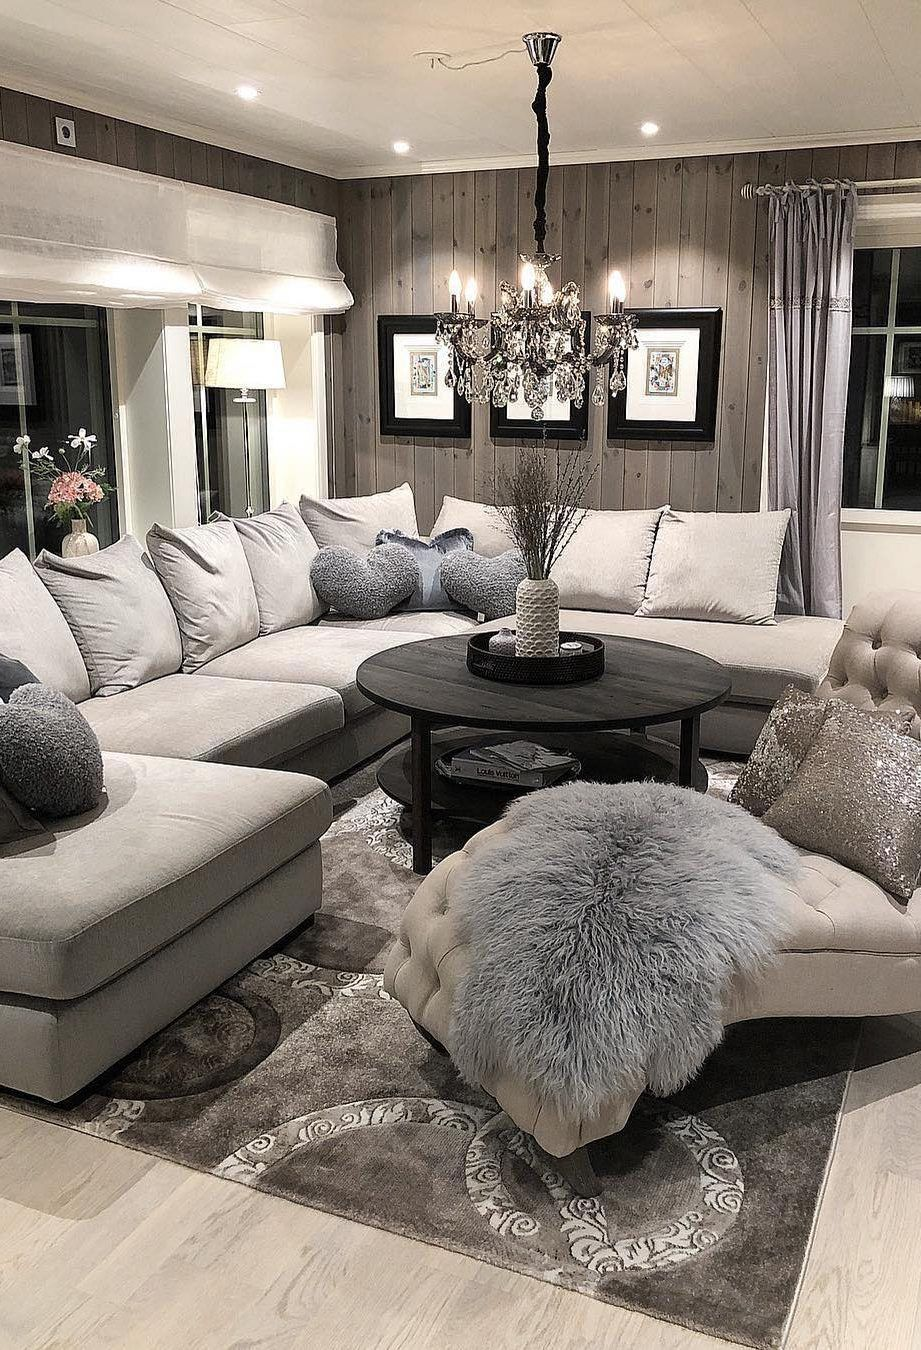 48 Most Popular Living Room Design Ideas For 2019 Images Page 36 Of 48 Evelyn S World My Dreams My Colors And My Life Apartment Living Room Design Small Living Room Decor Apartment Living Room